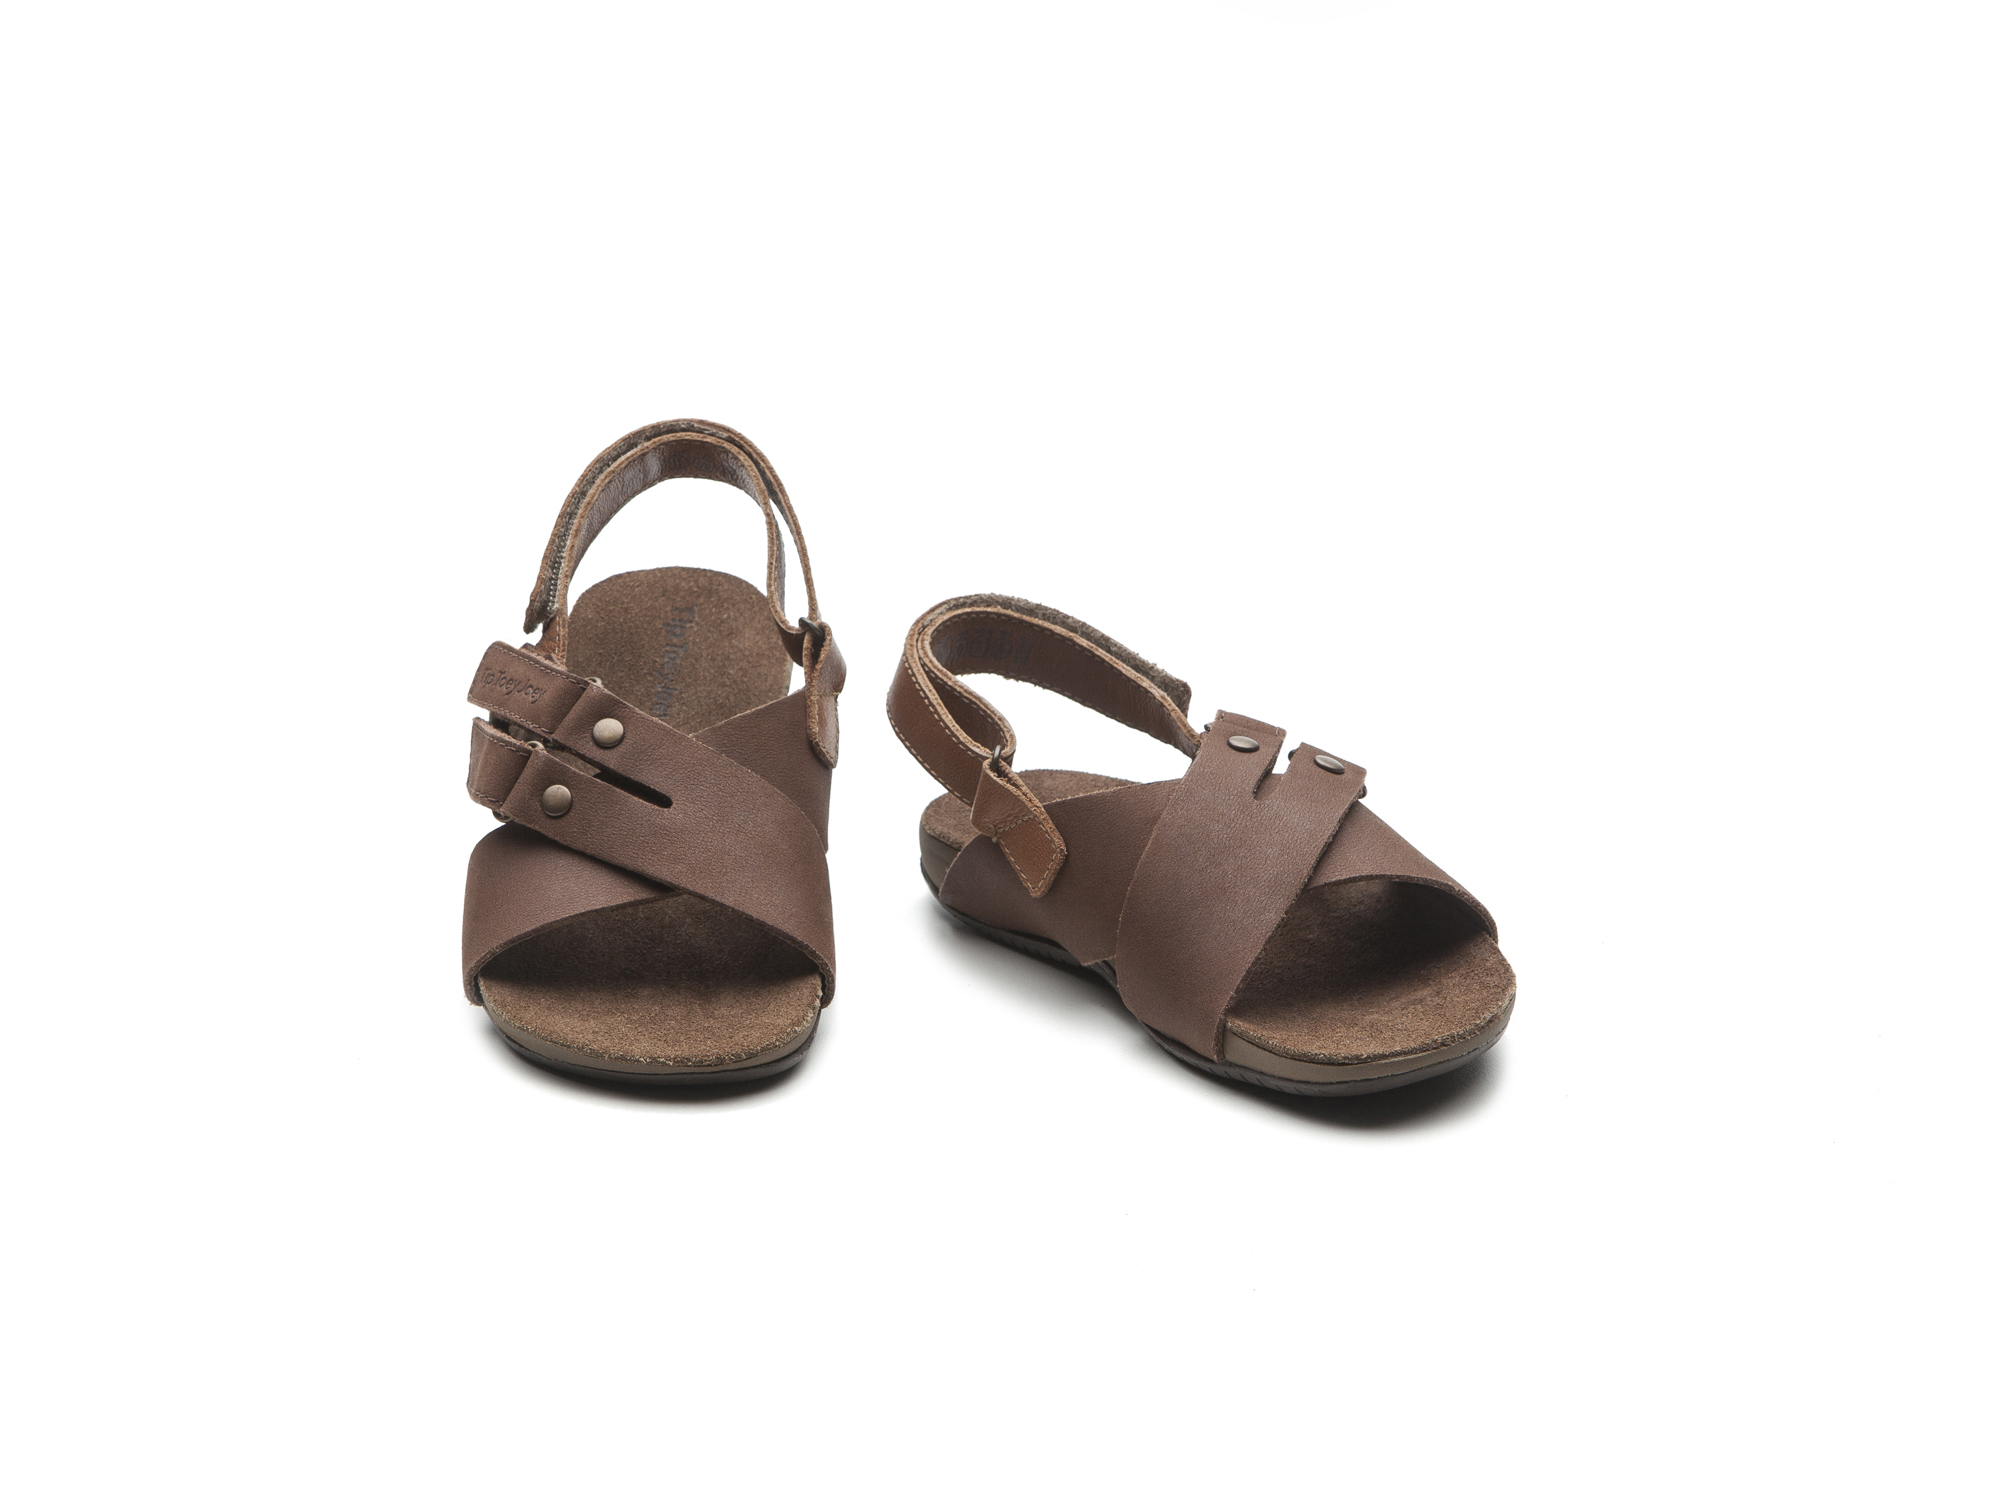 Sandália T Leash Old Brown/ Brown Thrash Toddler 2 à 4 anos - 1